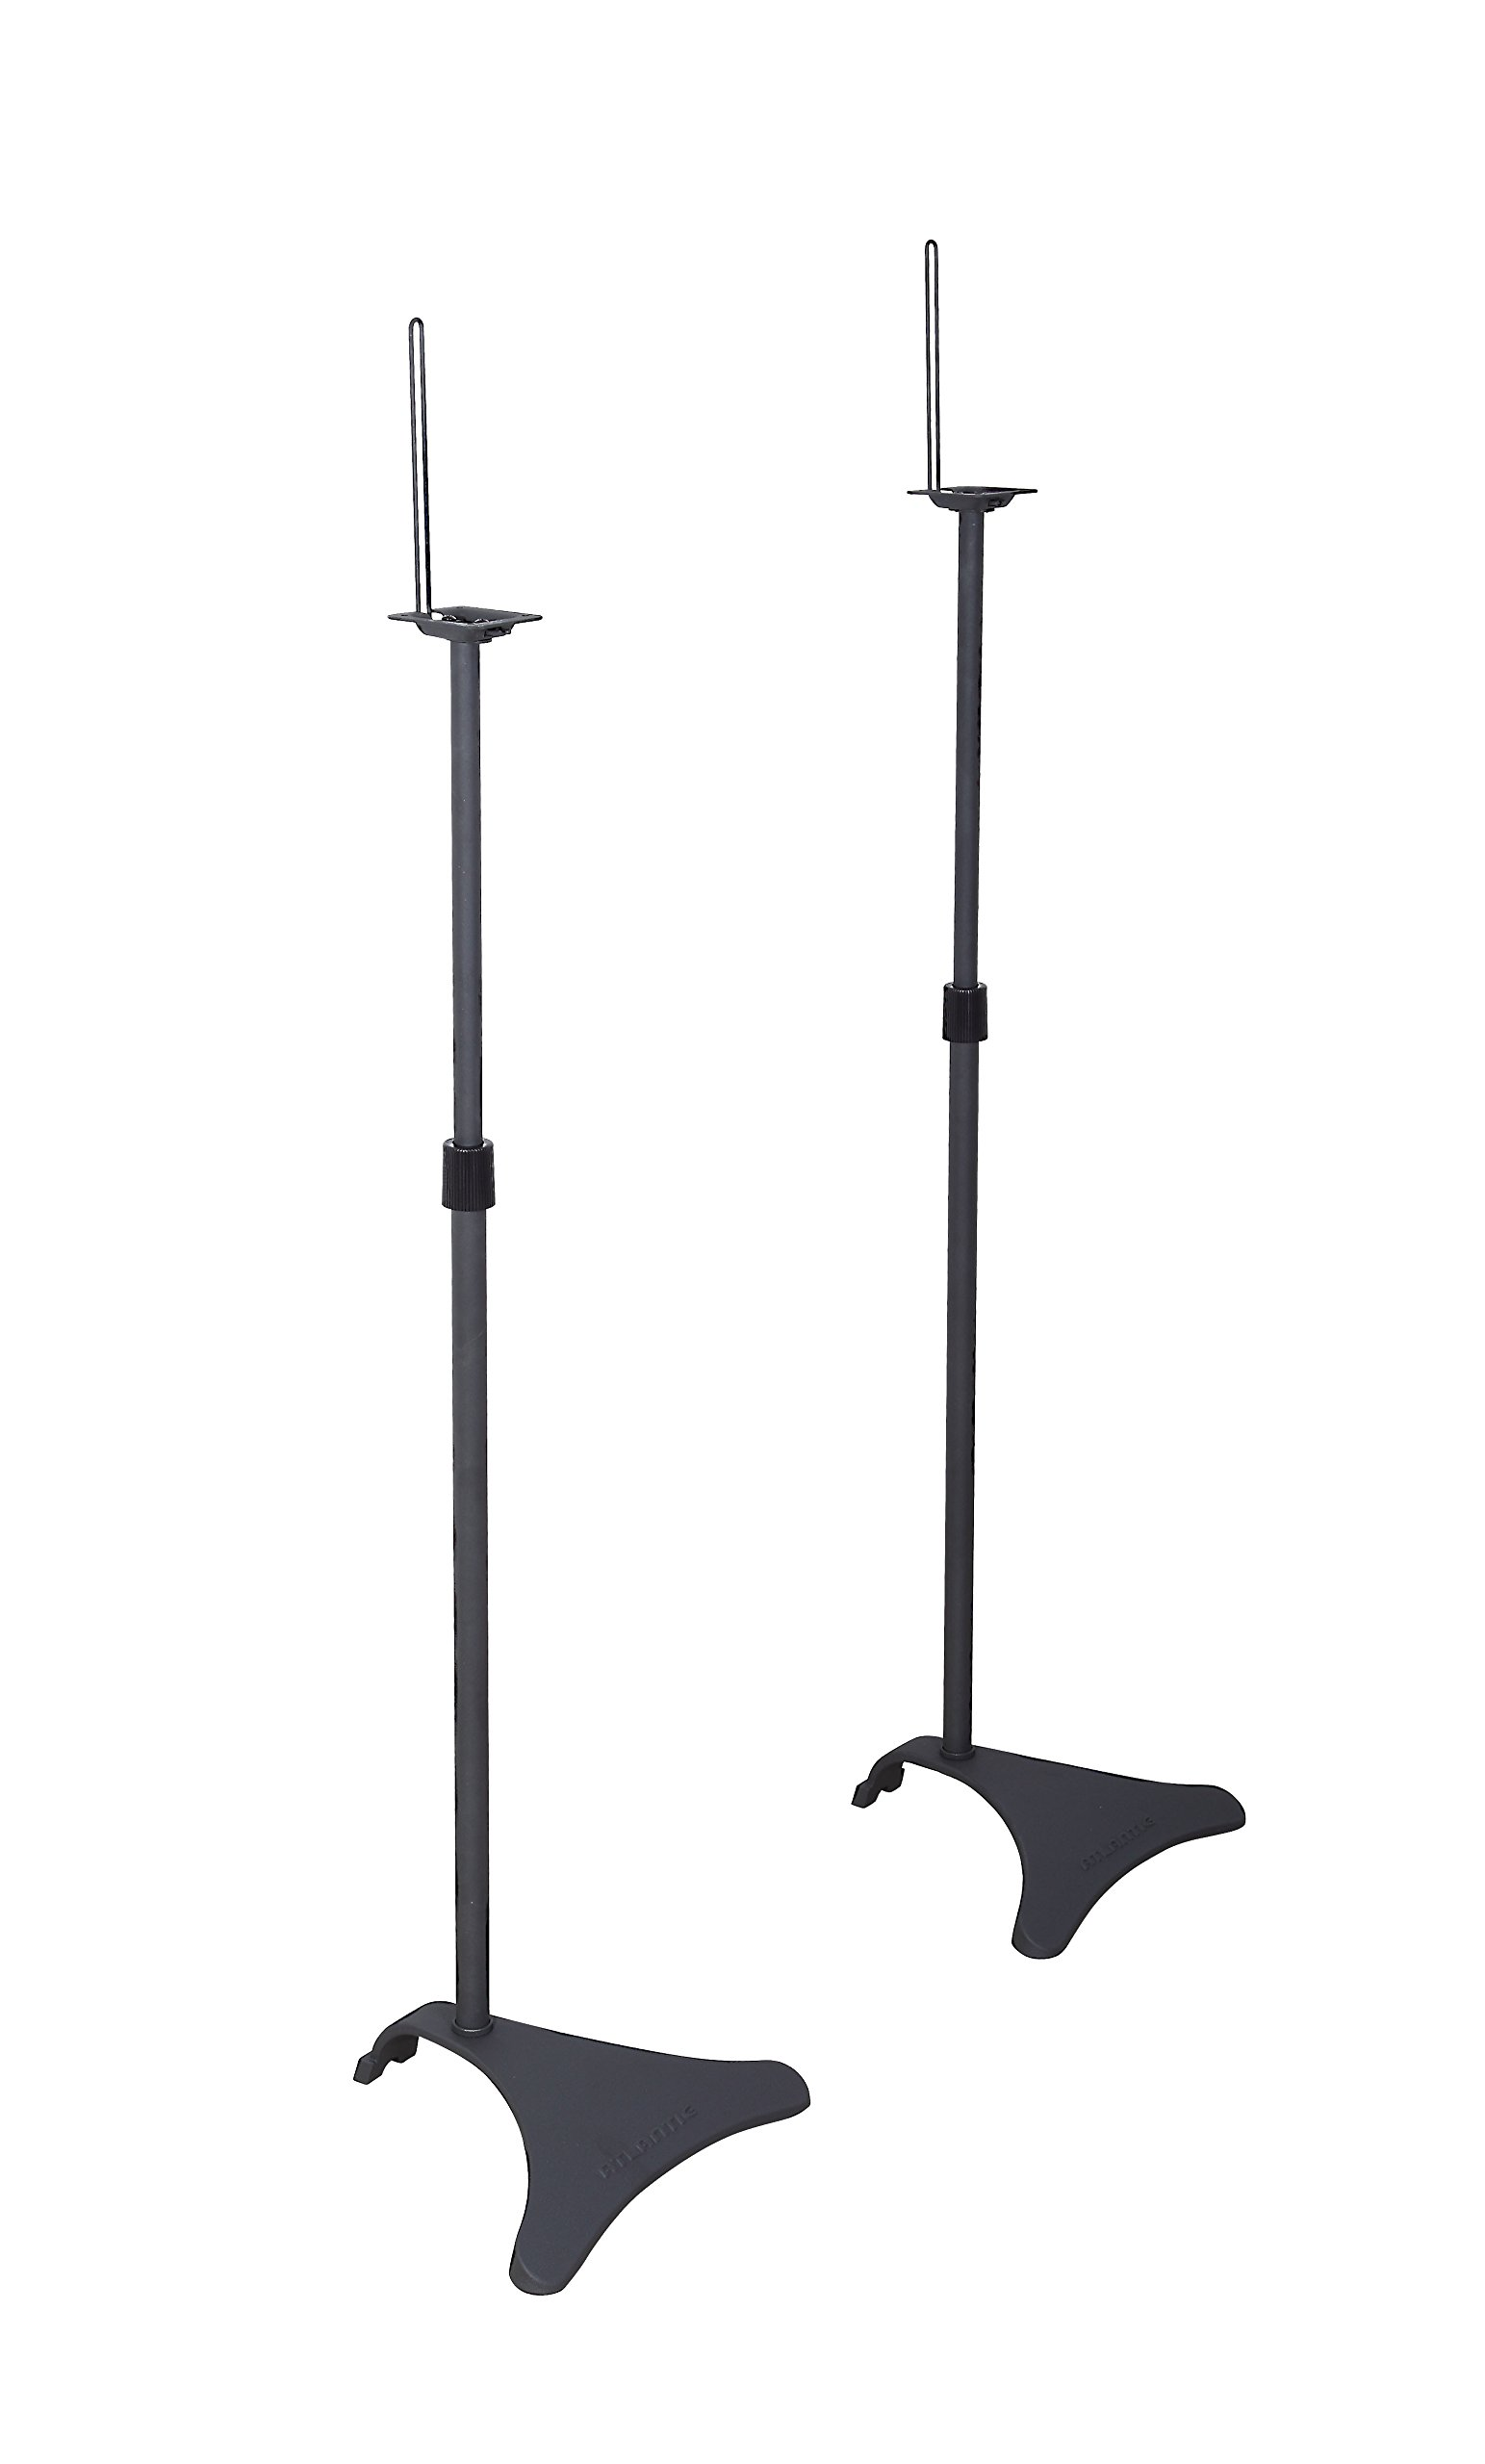 Atlantic Adjustable Height Speaker Stands - Set of 2 Holds Satellite Speakers, Adjustable Stand Height from 27 to 48 inch, Heavy Duty Powder Coated Aluminum with Wire Management PN77305018 in Black by Atlantic